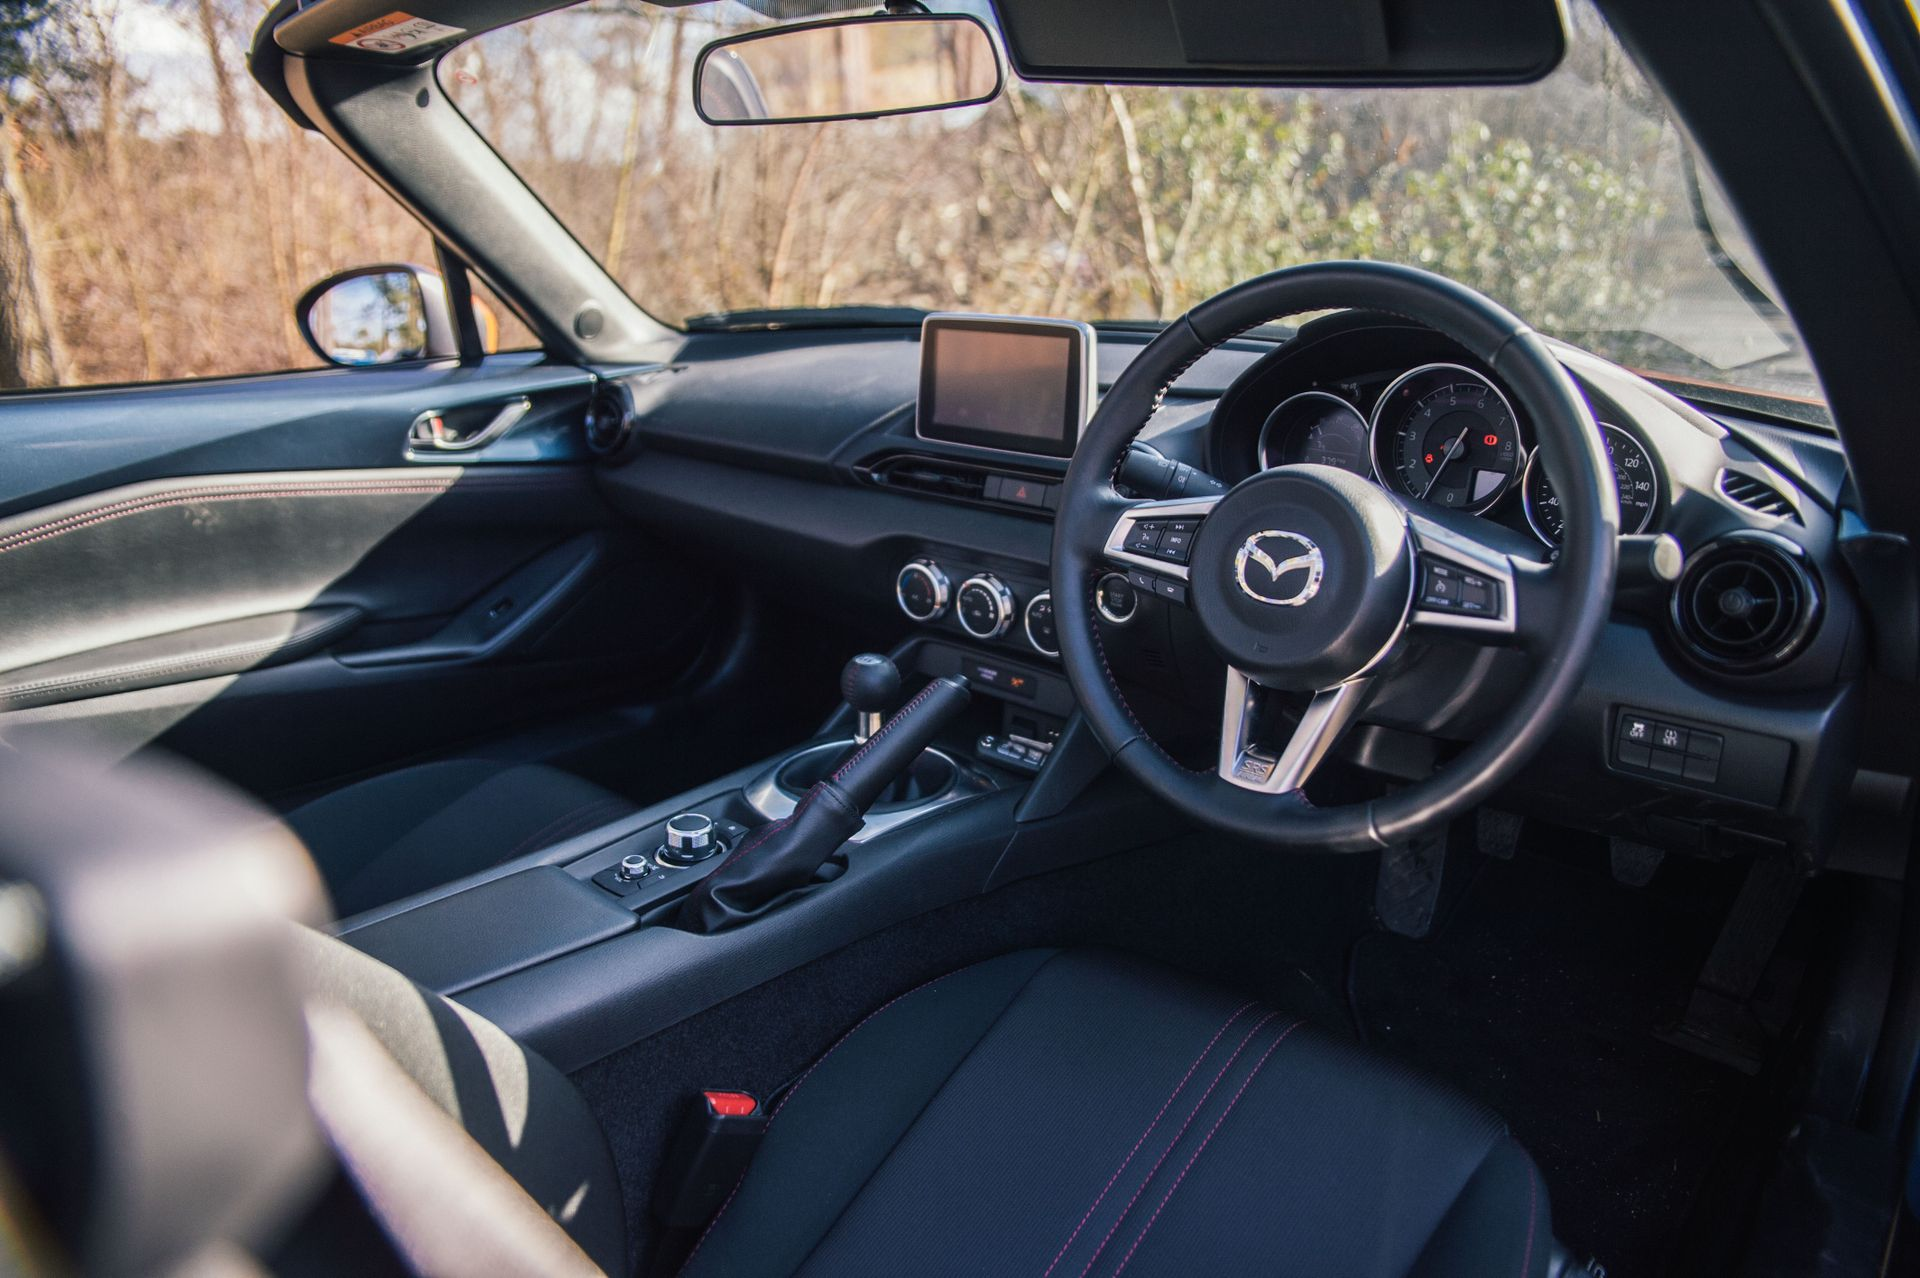 Mazda - Mazda MX-5 Generations Test: Why It's Evolved In Exactly The Right Way - Features